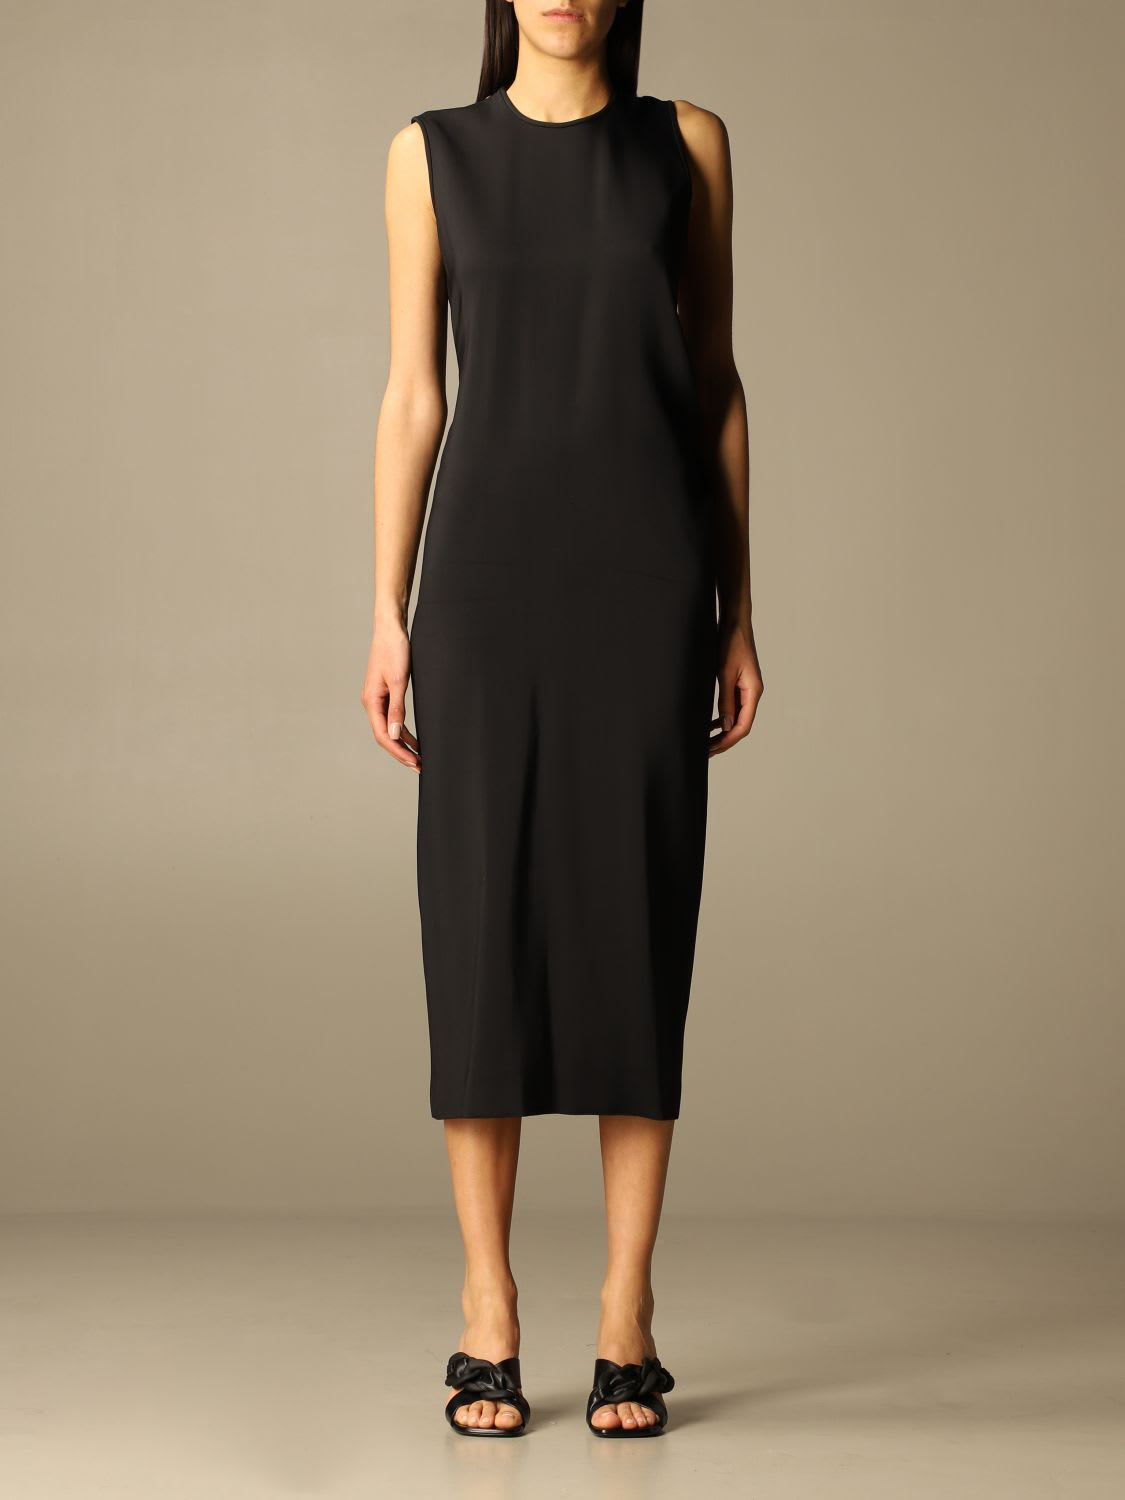 Buy N.21 N? 21 Dress N ° 21 Dress With Back Neckline online, shop N.21 with free shipping